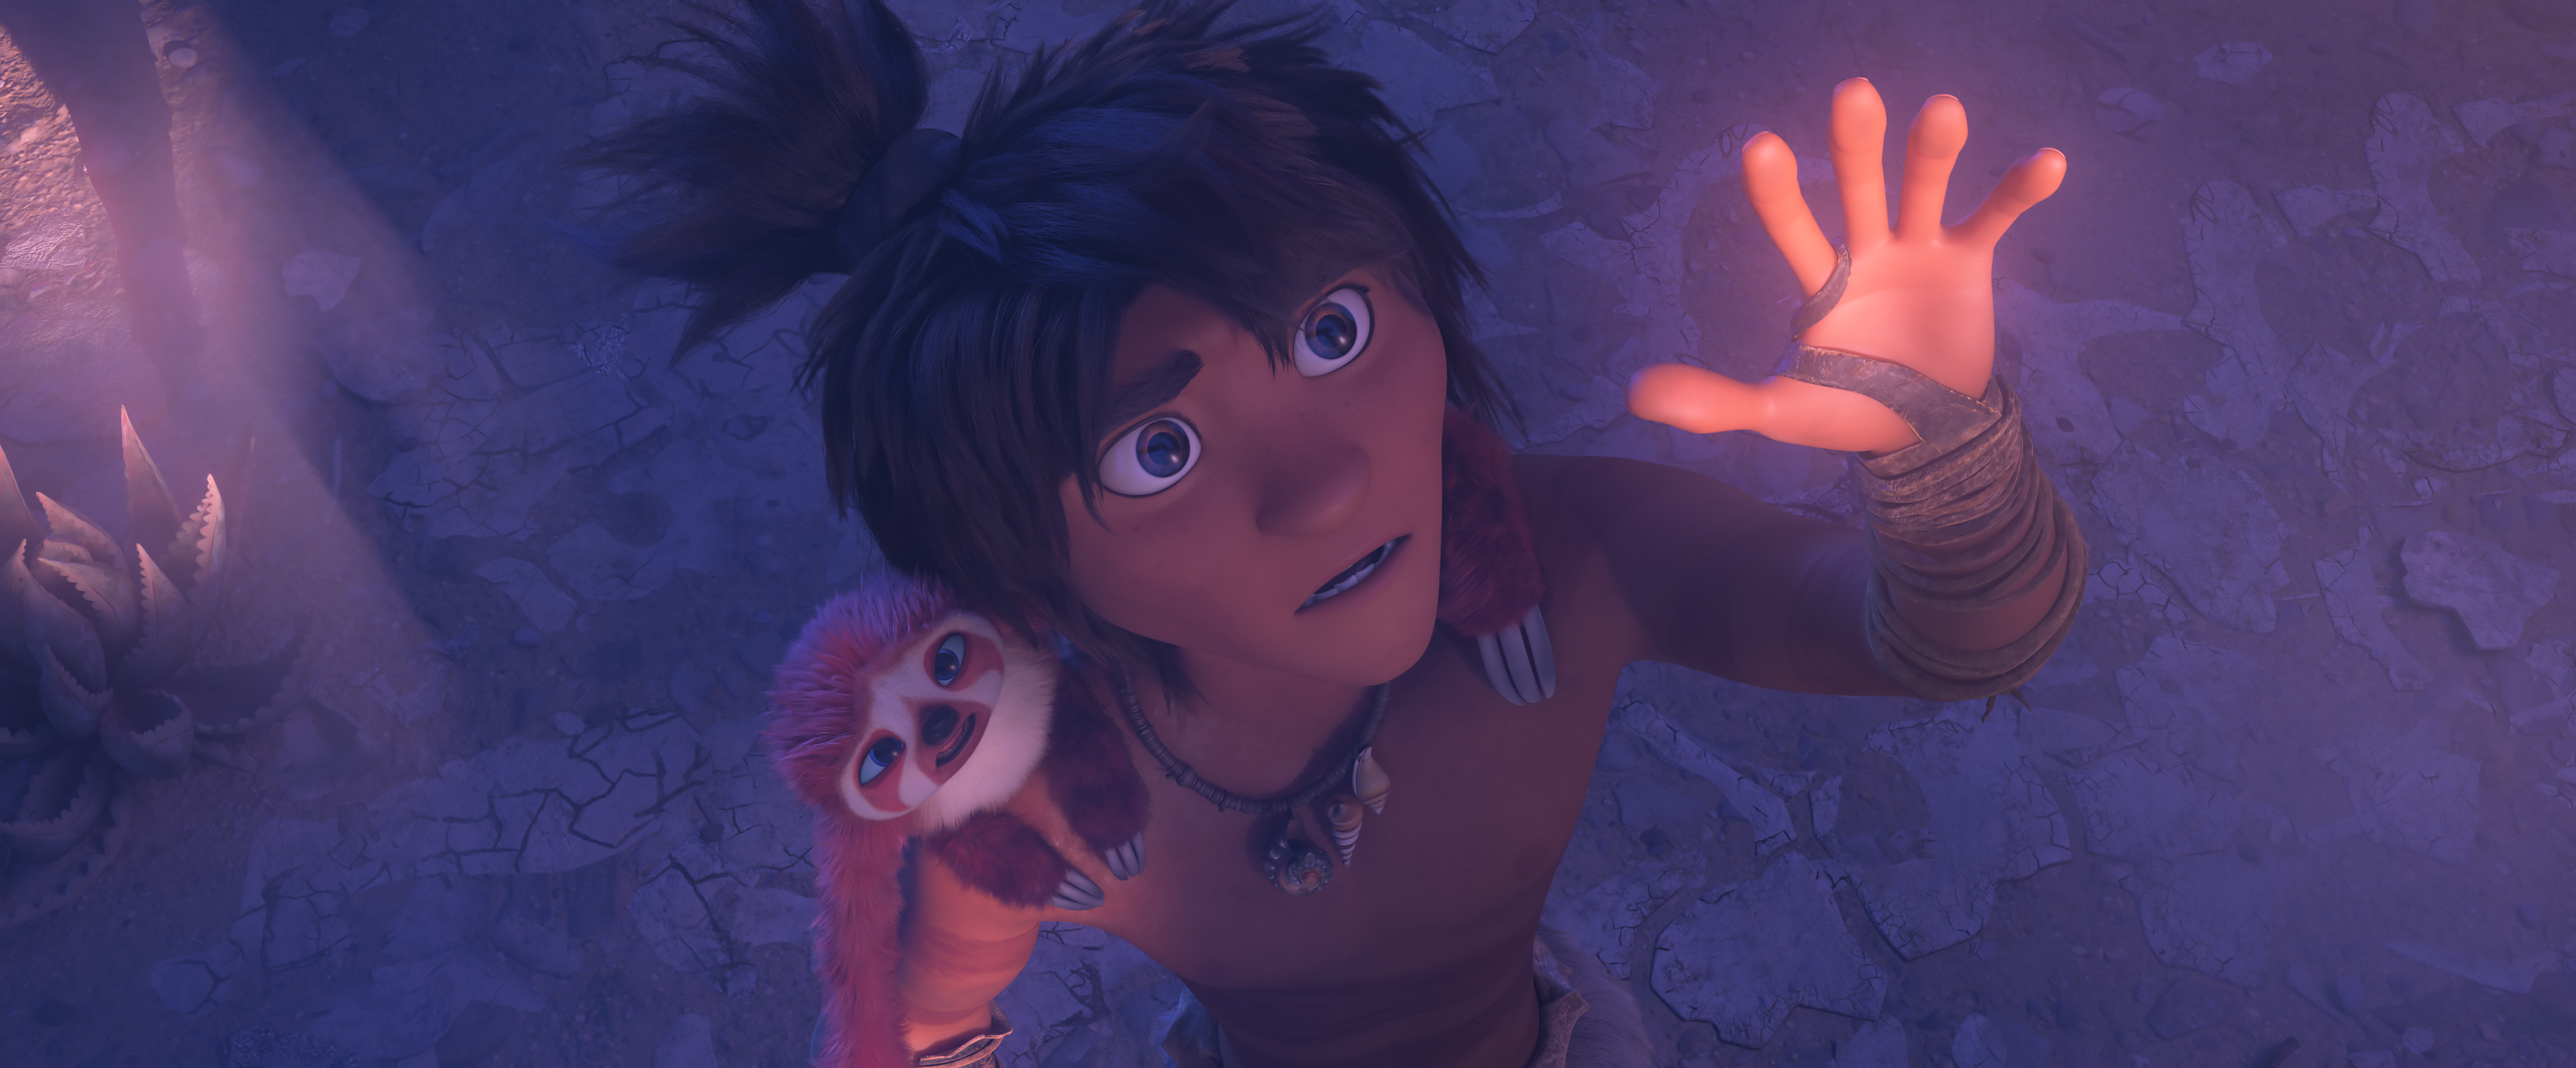 The Croods A New Age 2020 Photo Gallery Imdb